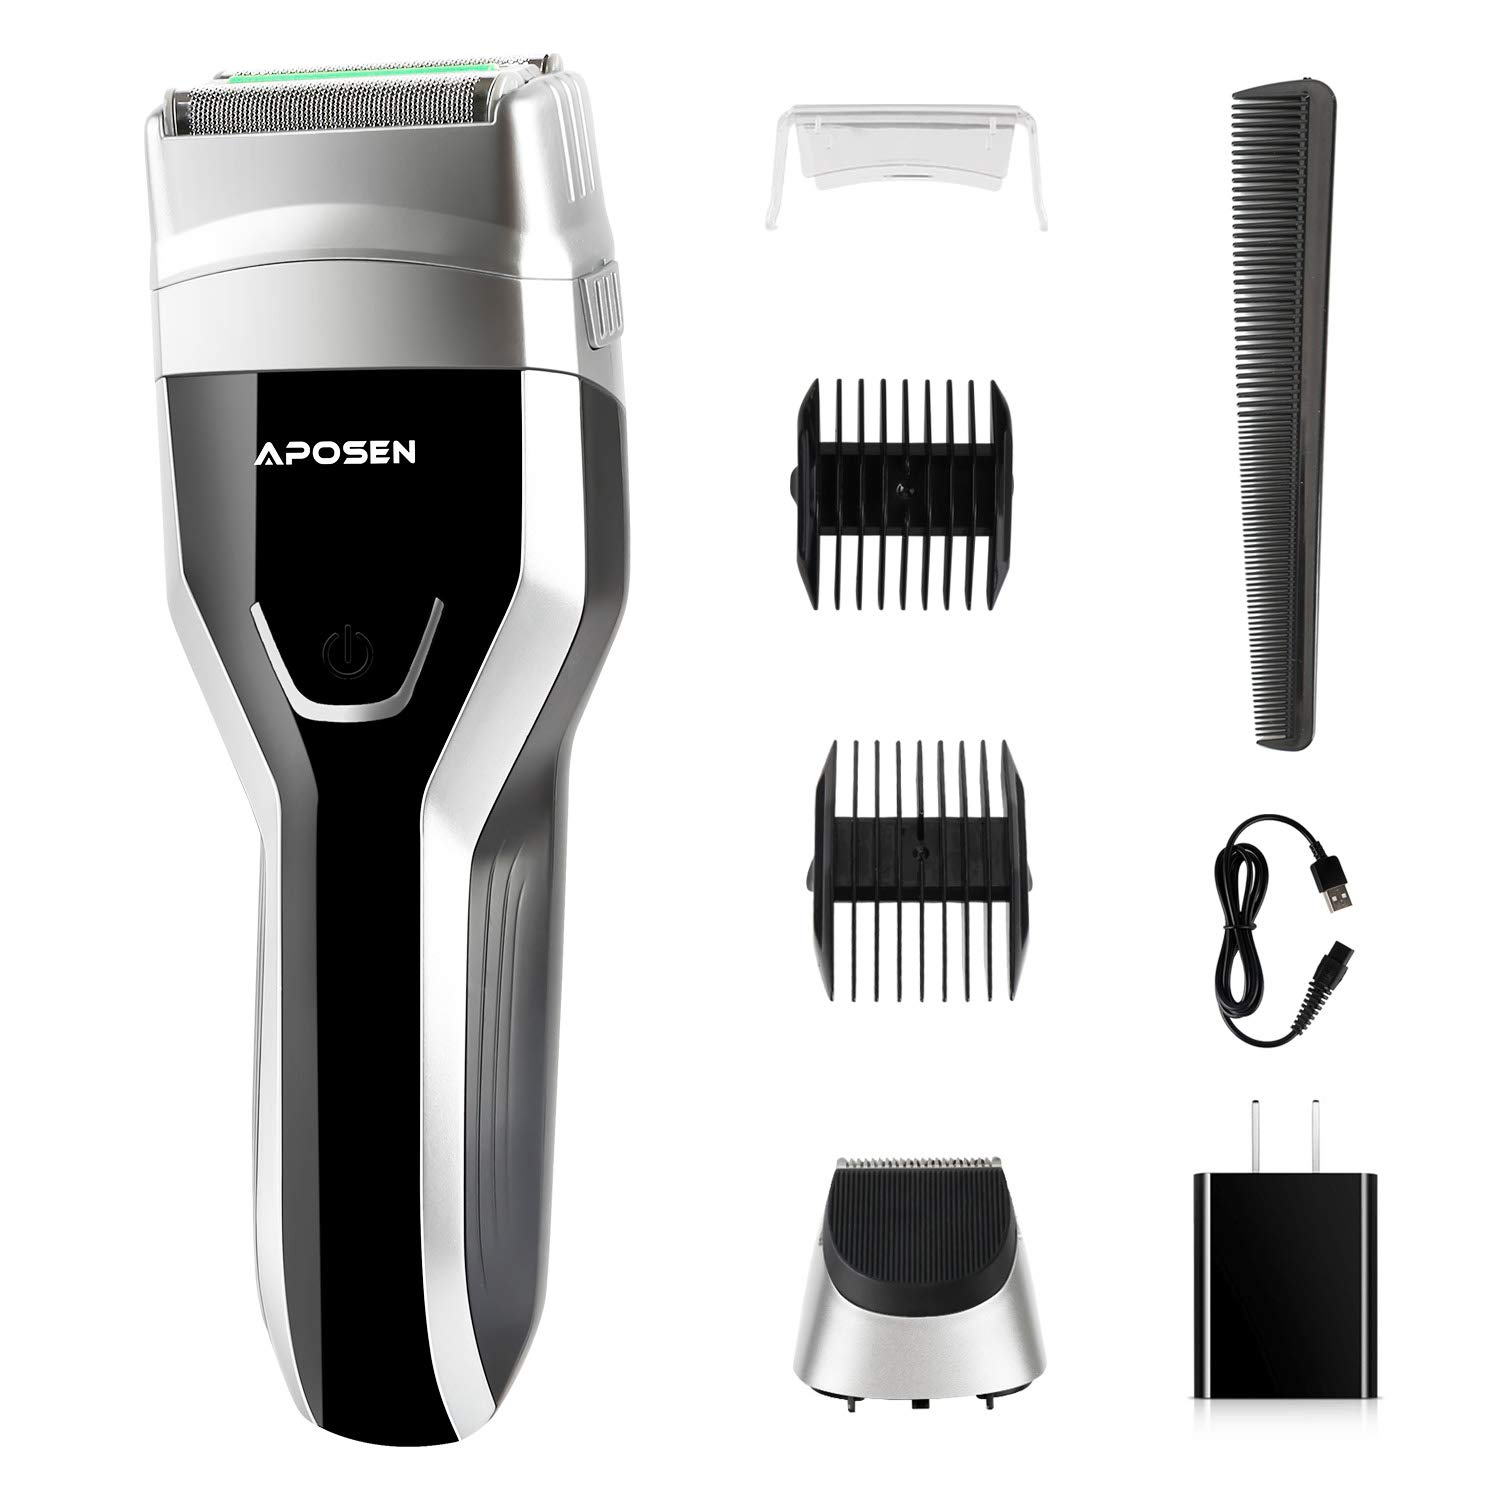 Aposen Electric Razer for Men, 2 in 1 USB Rechargeable Hair Clippers with LED Display, Wet & Dry ElectricShaver IPX7 100% Waterproof Cordless Foil Razor, G5 Black